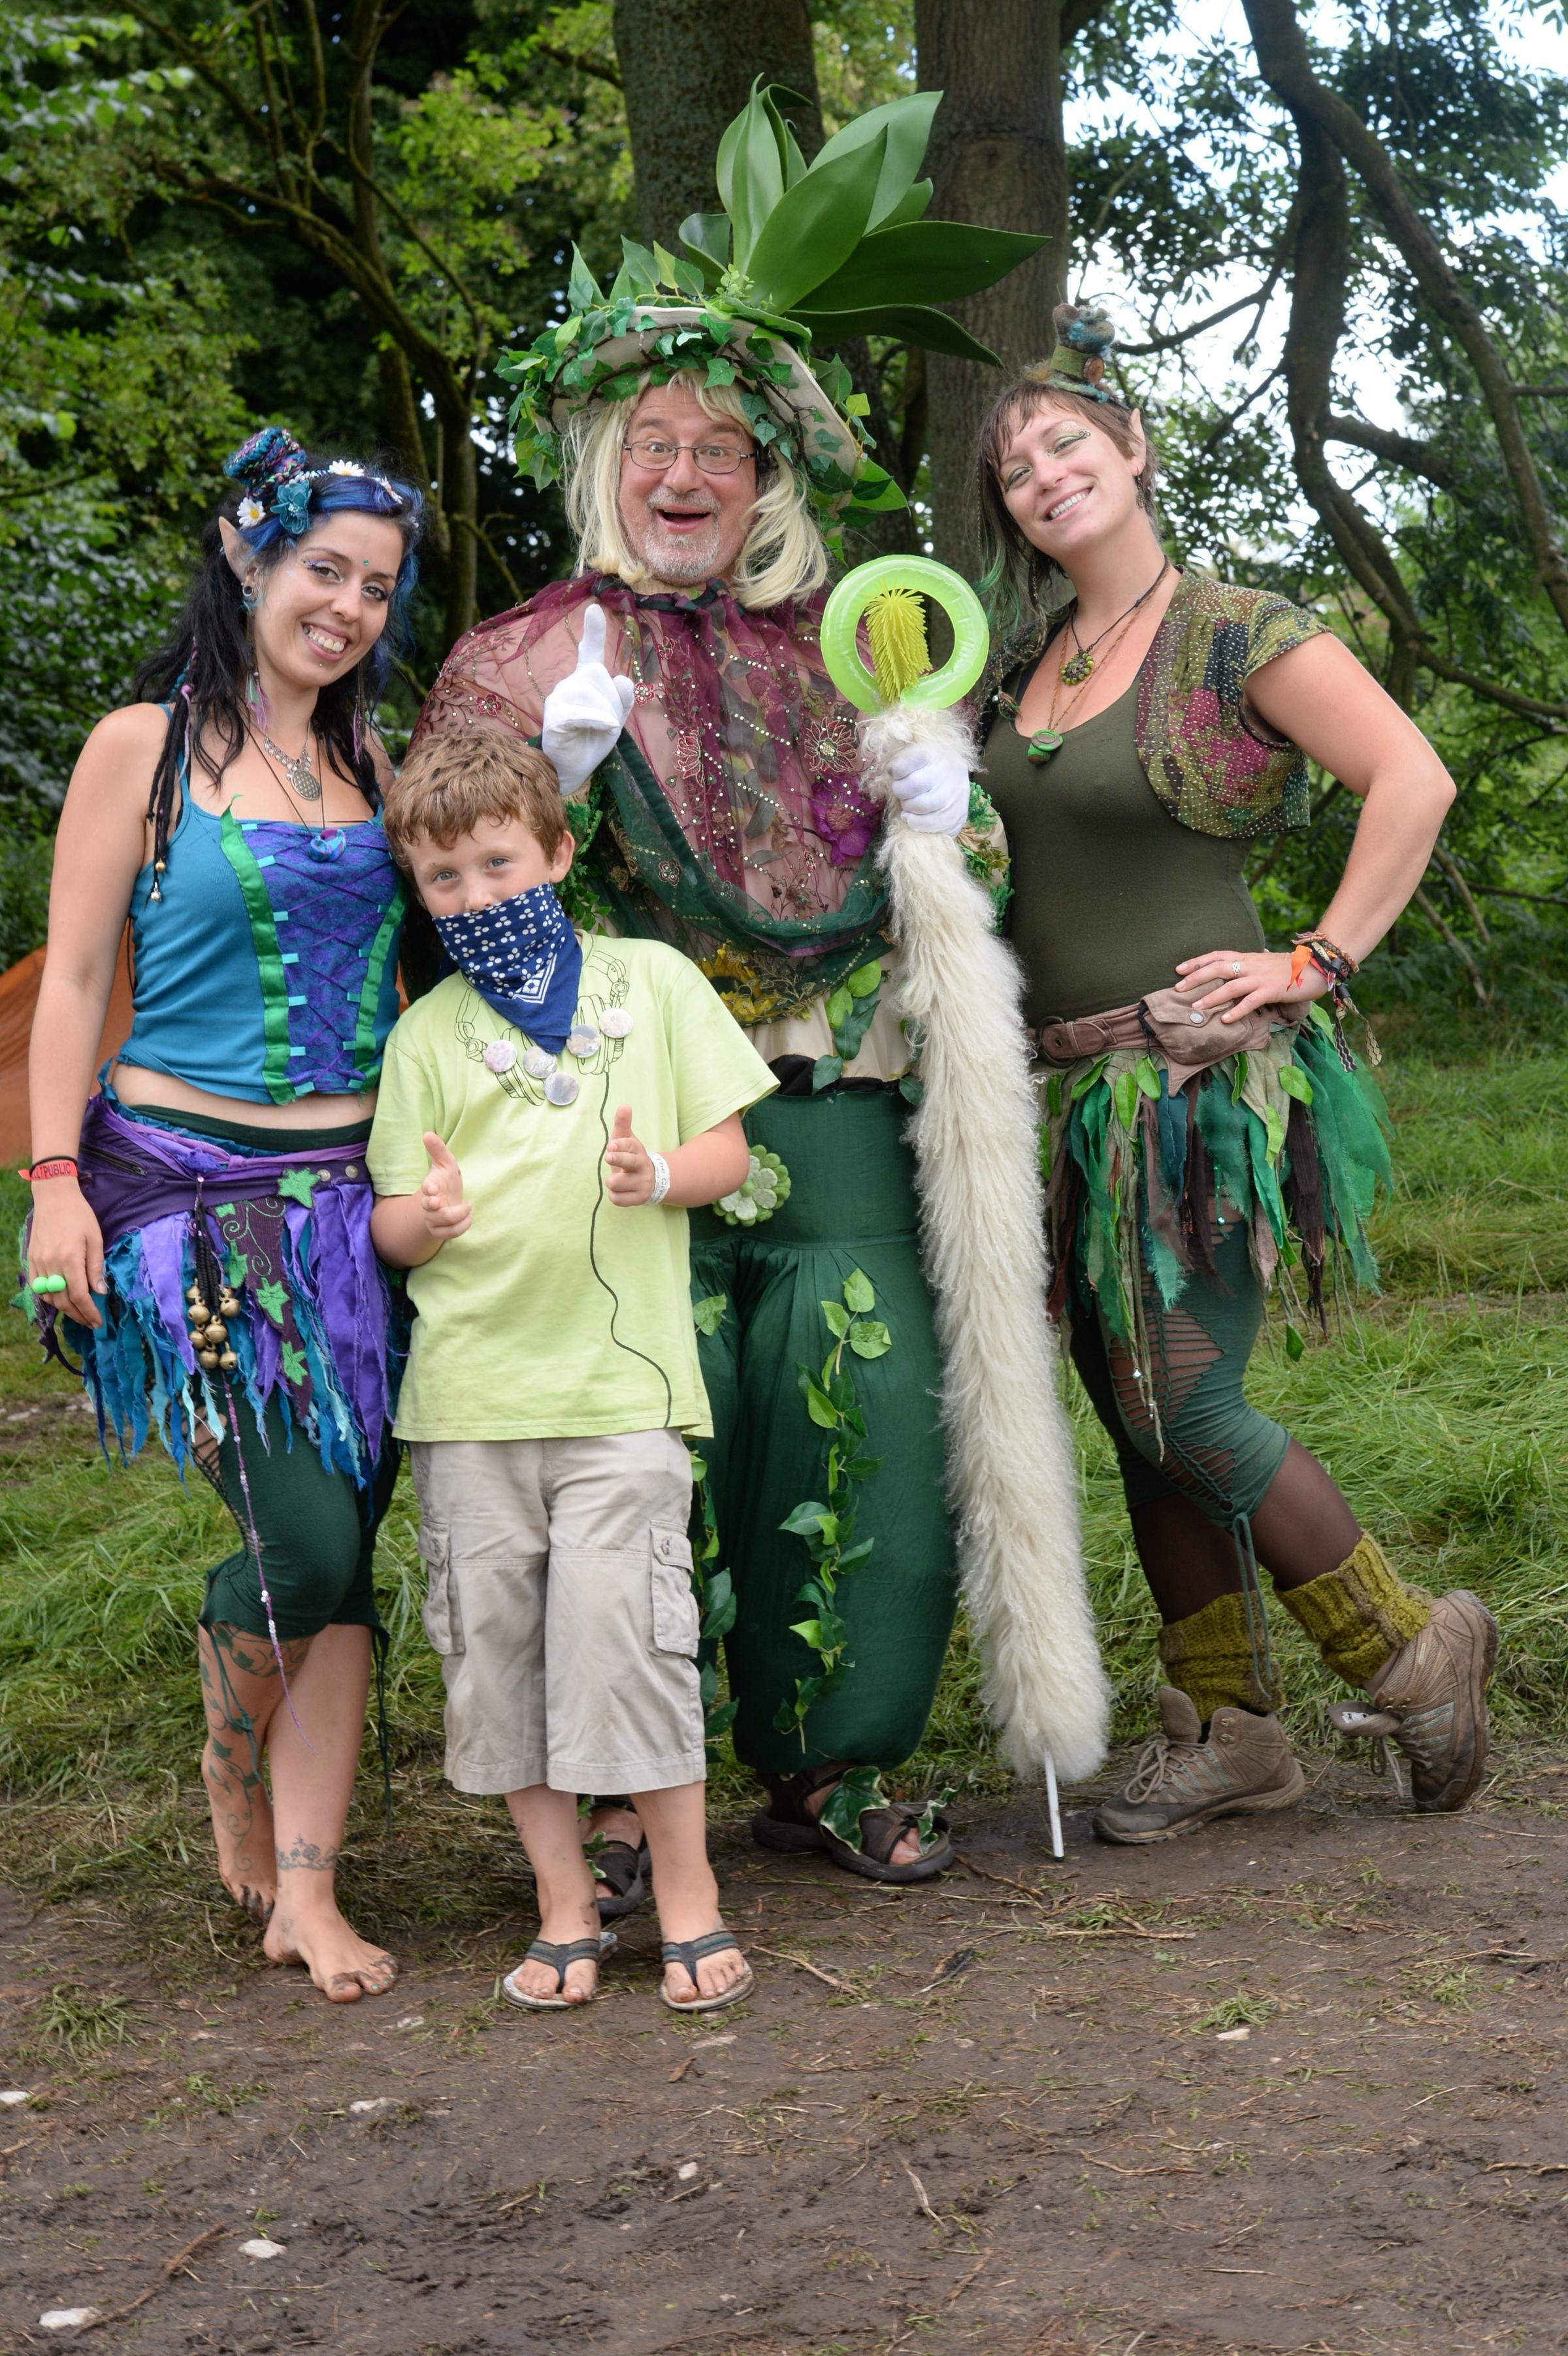 The Green Gathering festival in Chepstow is focussing on sustainability for the whole family